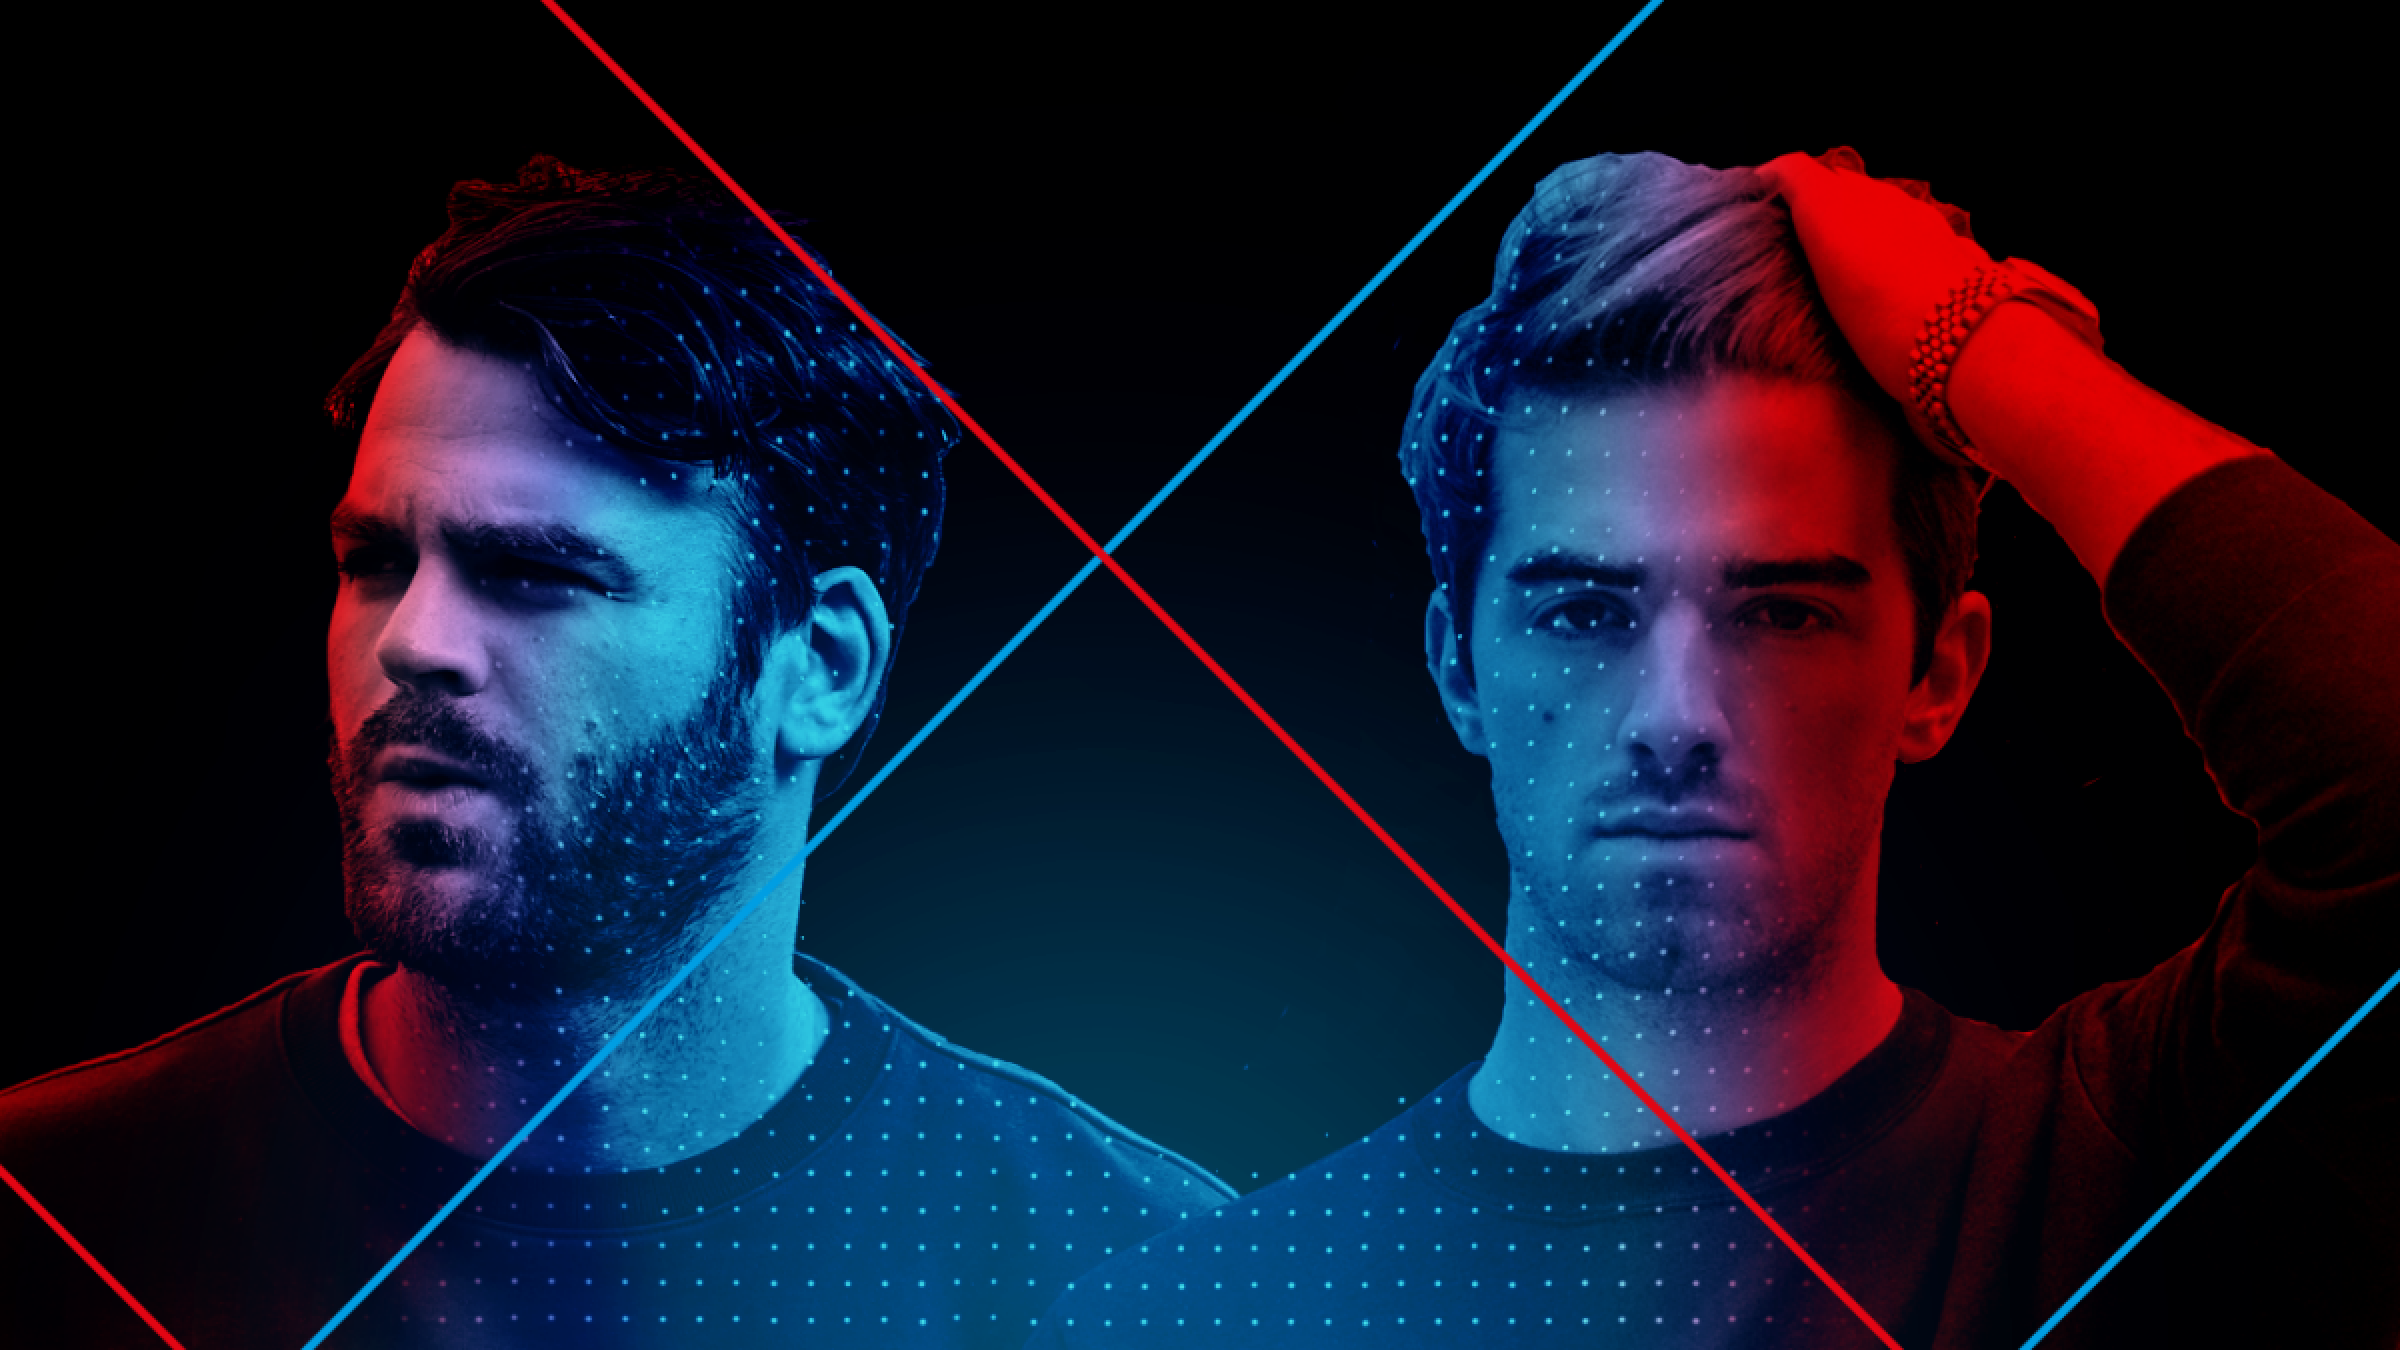 The Chainsmokers HD Wallpaper Background Image 2400x1350 ID 2400x1350